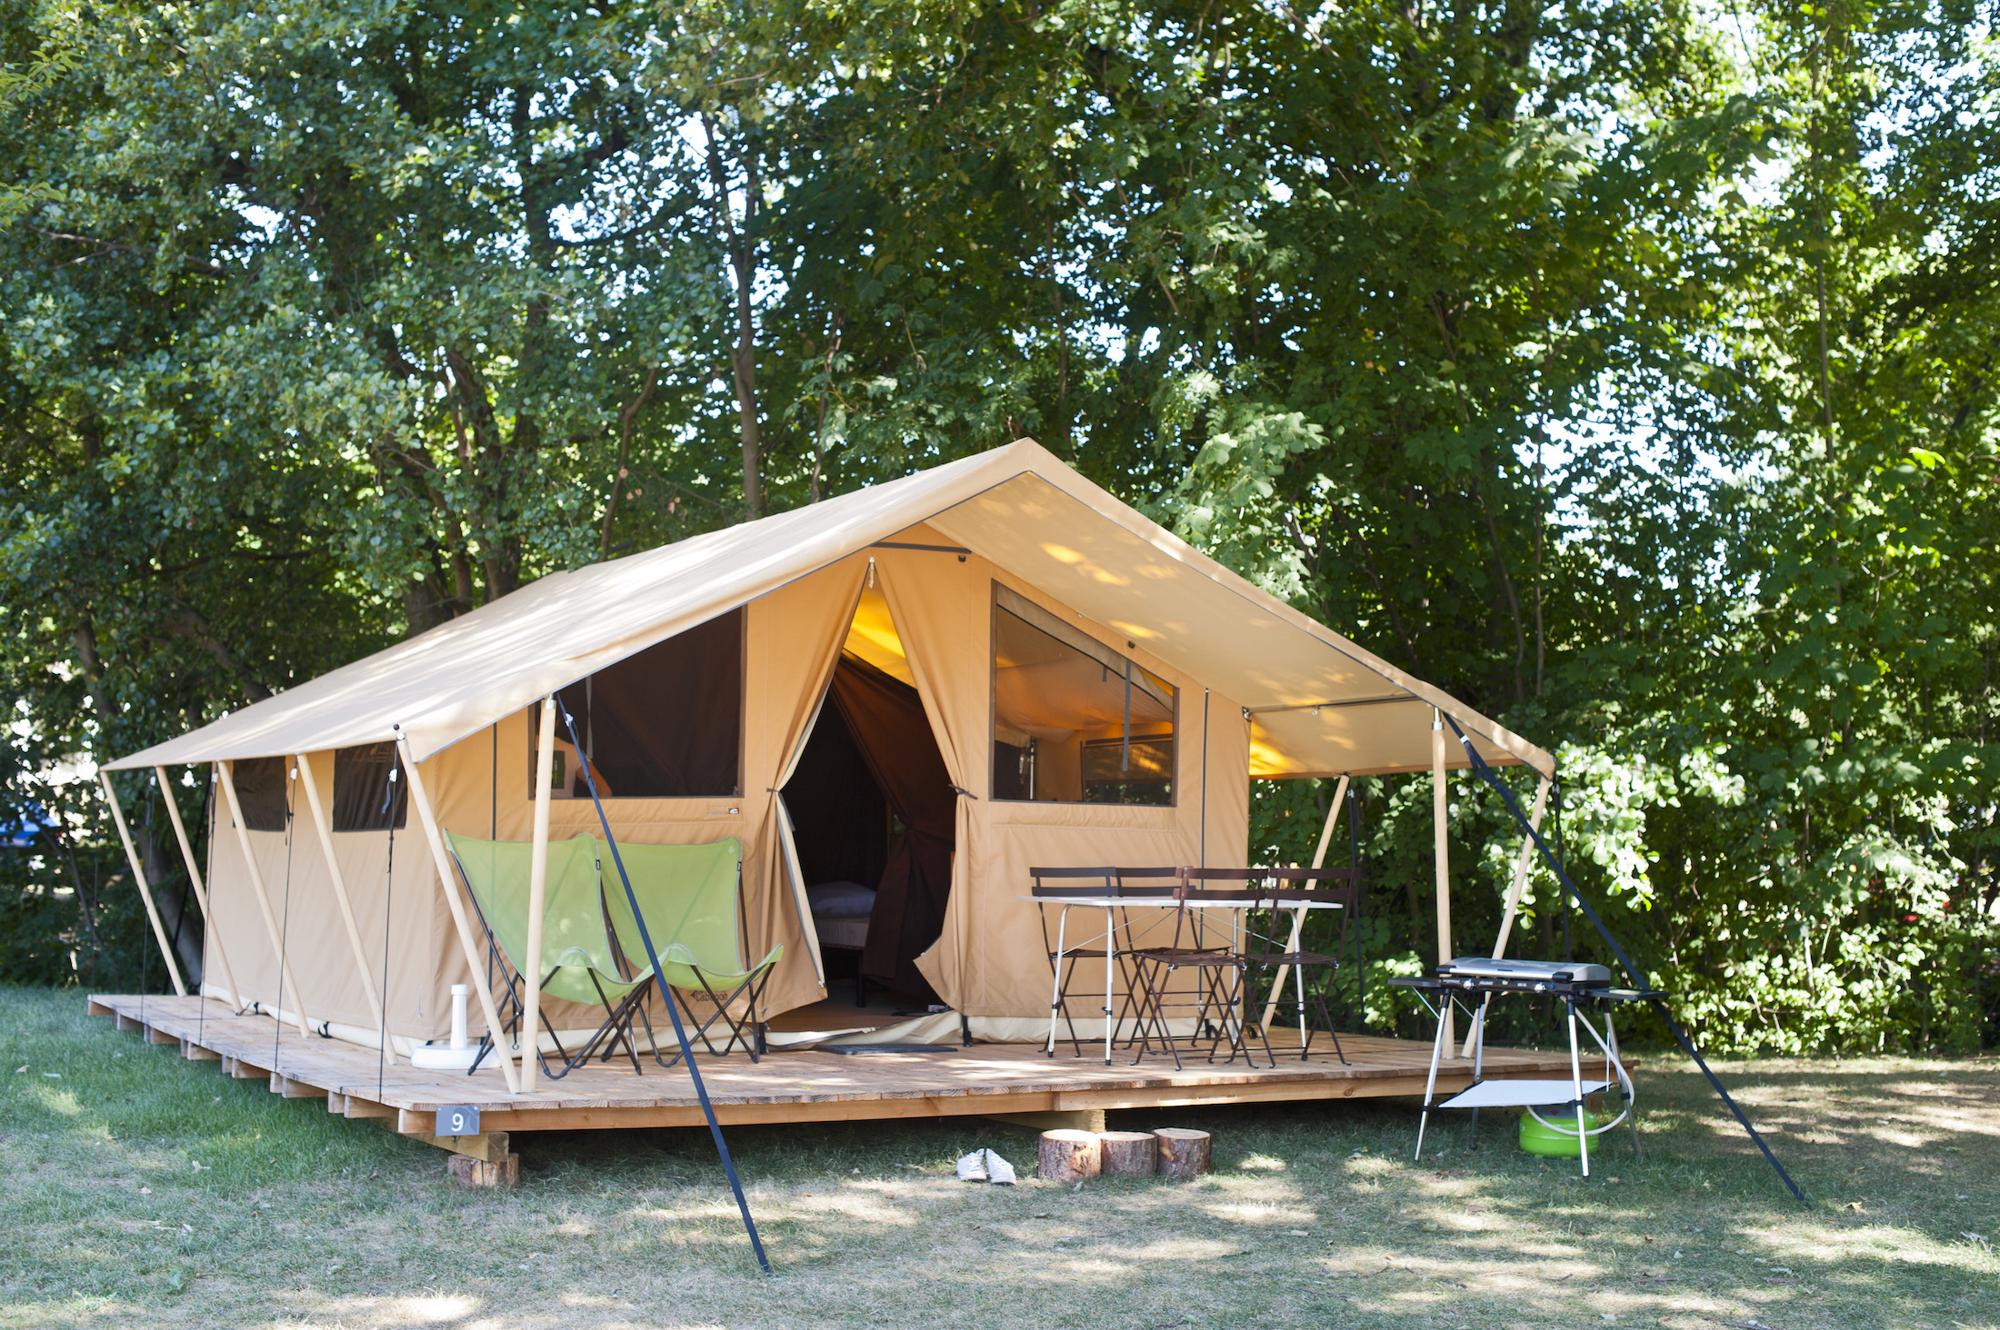 Glamping in Bas-Rhin | Best Glamping Sites in Bas-Rhin, France